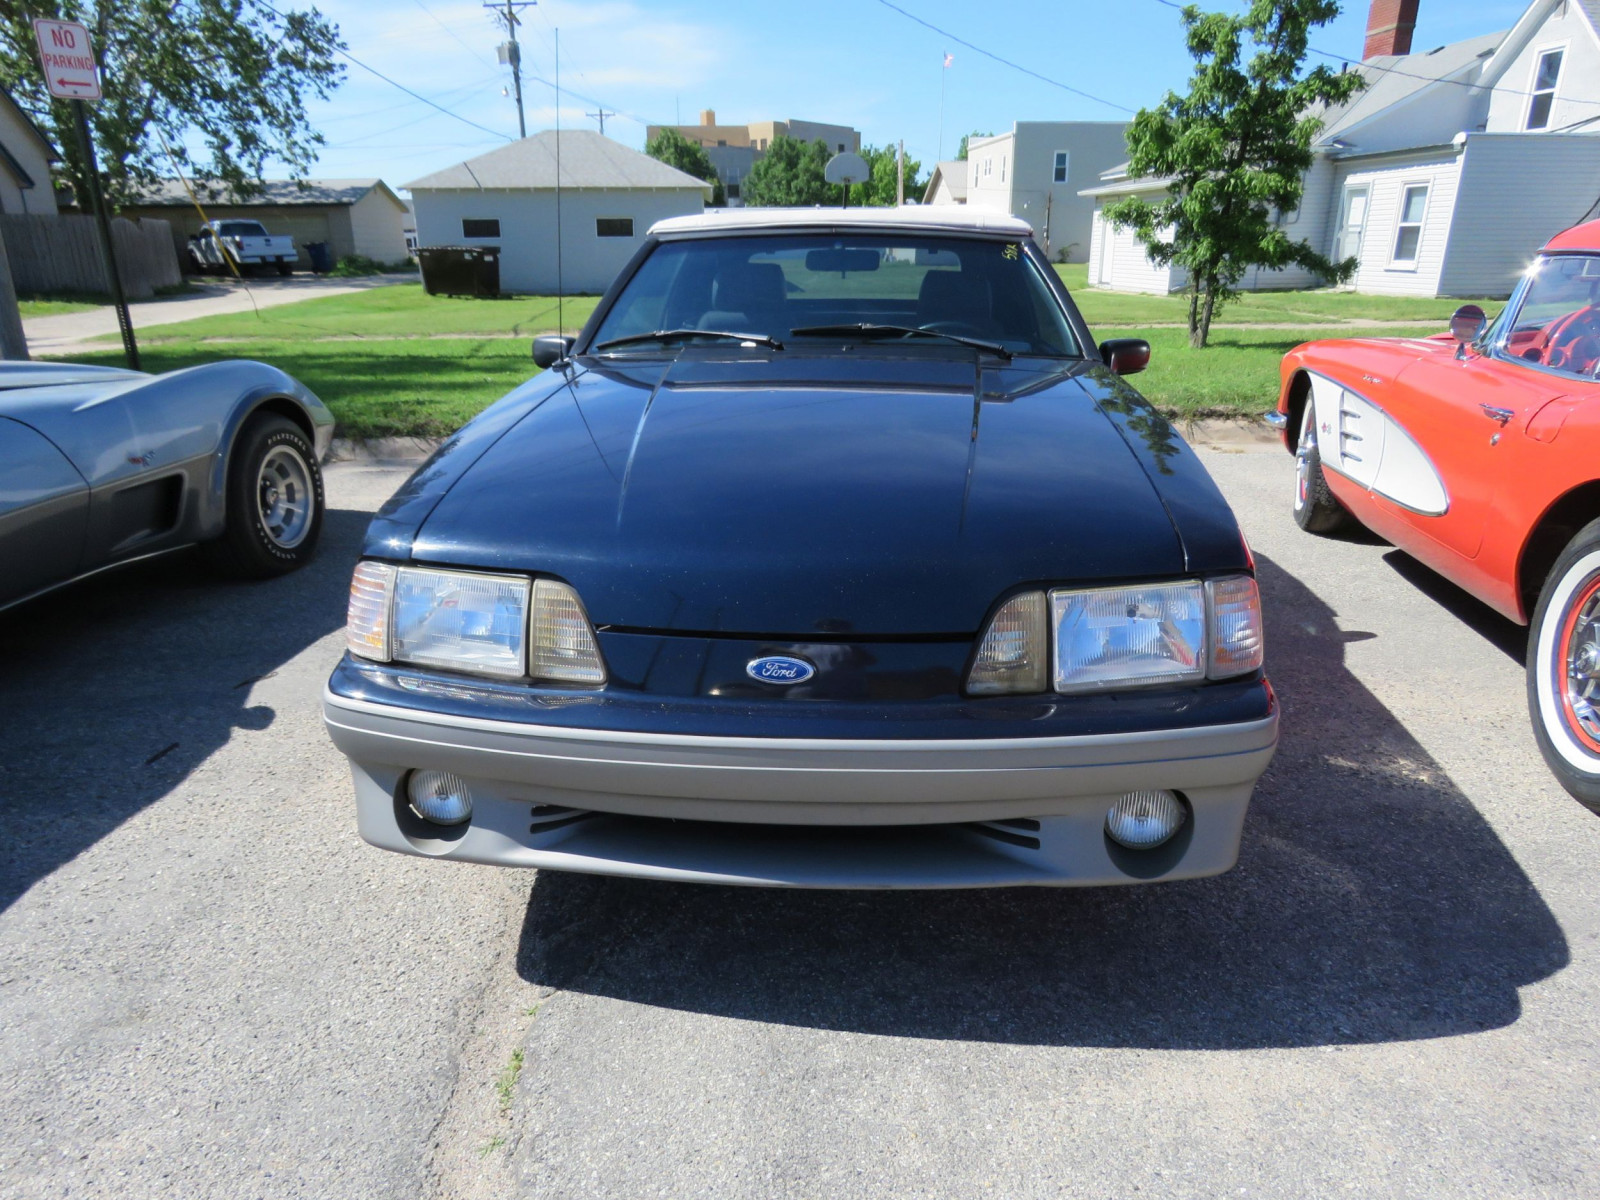 1988 FORD MUSTANG GT 5.0 CONVERTIBLE - Image 2